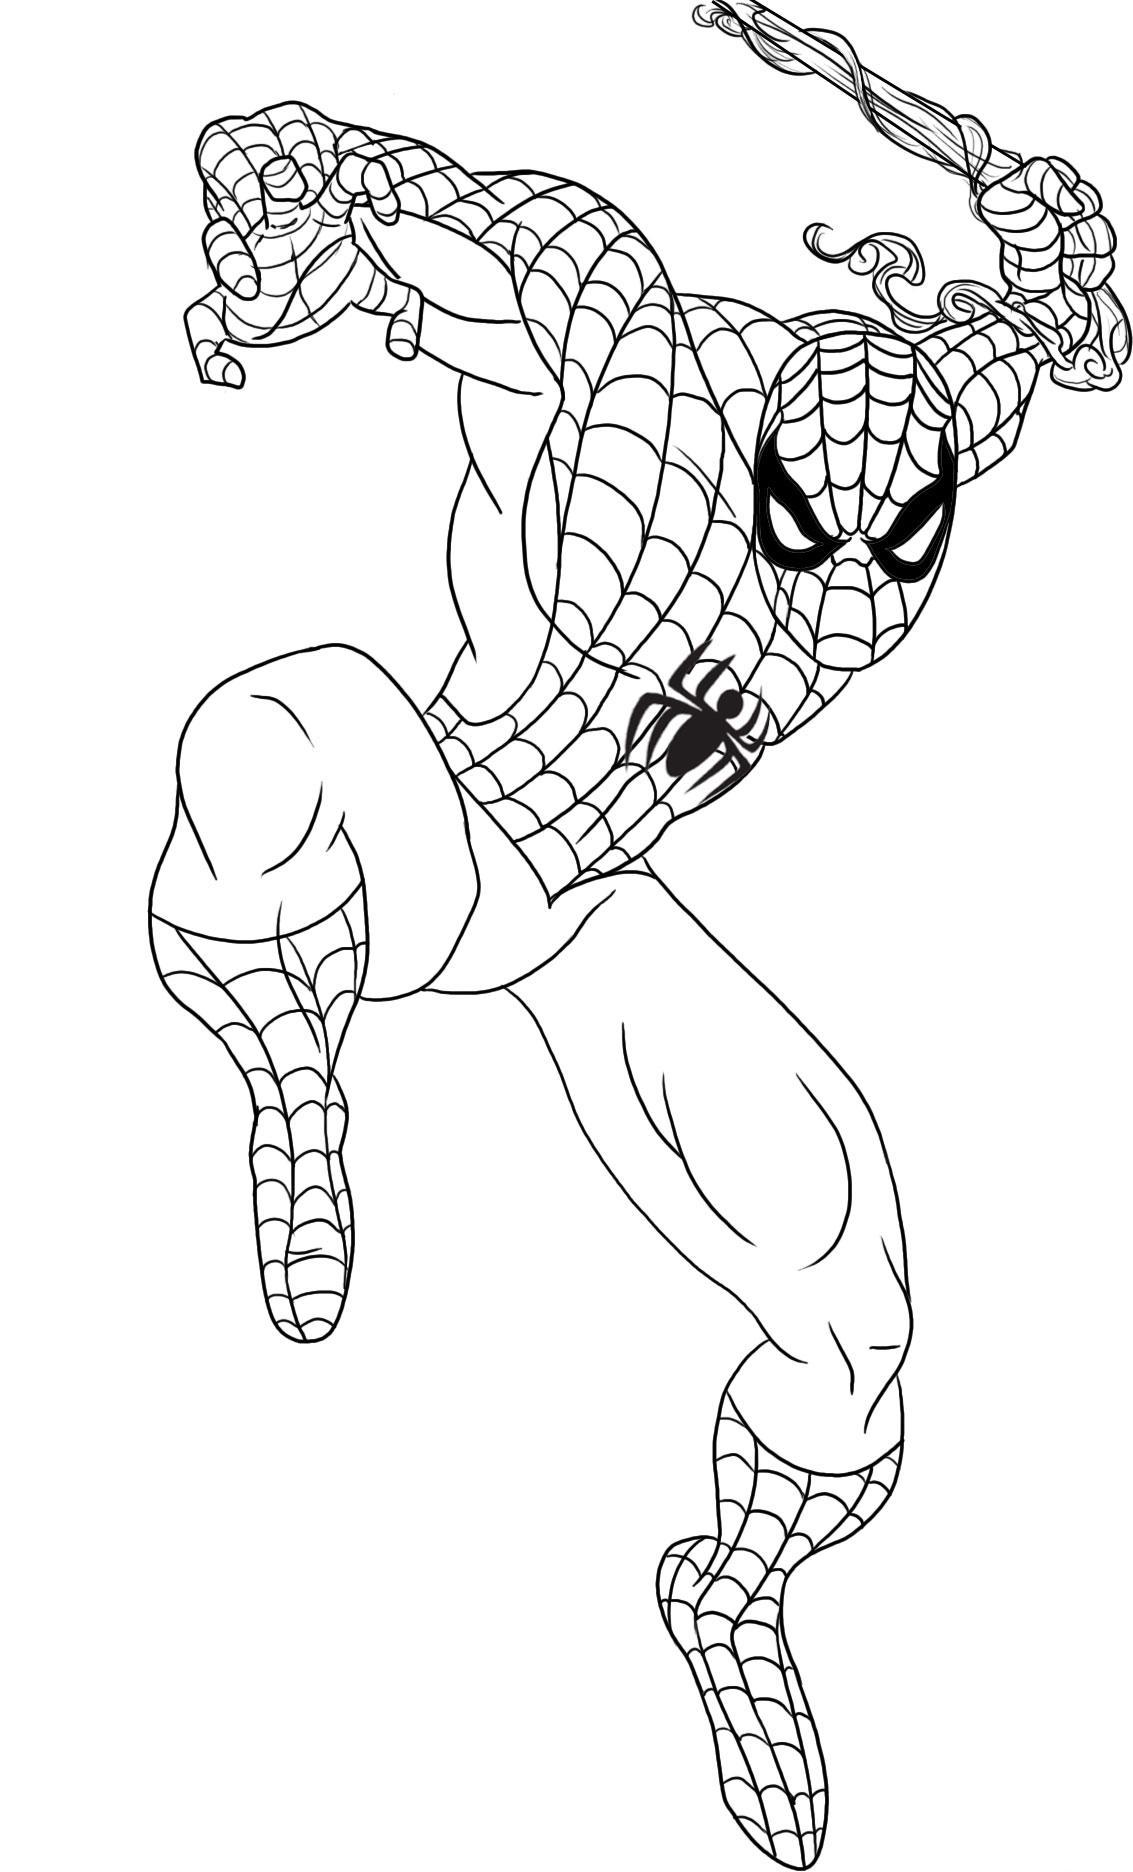 free printable color pages - free printable spiderman coloring pages for kids